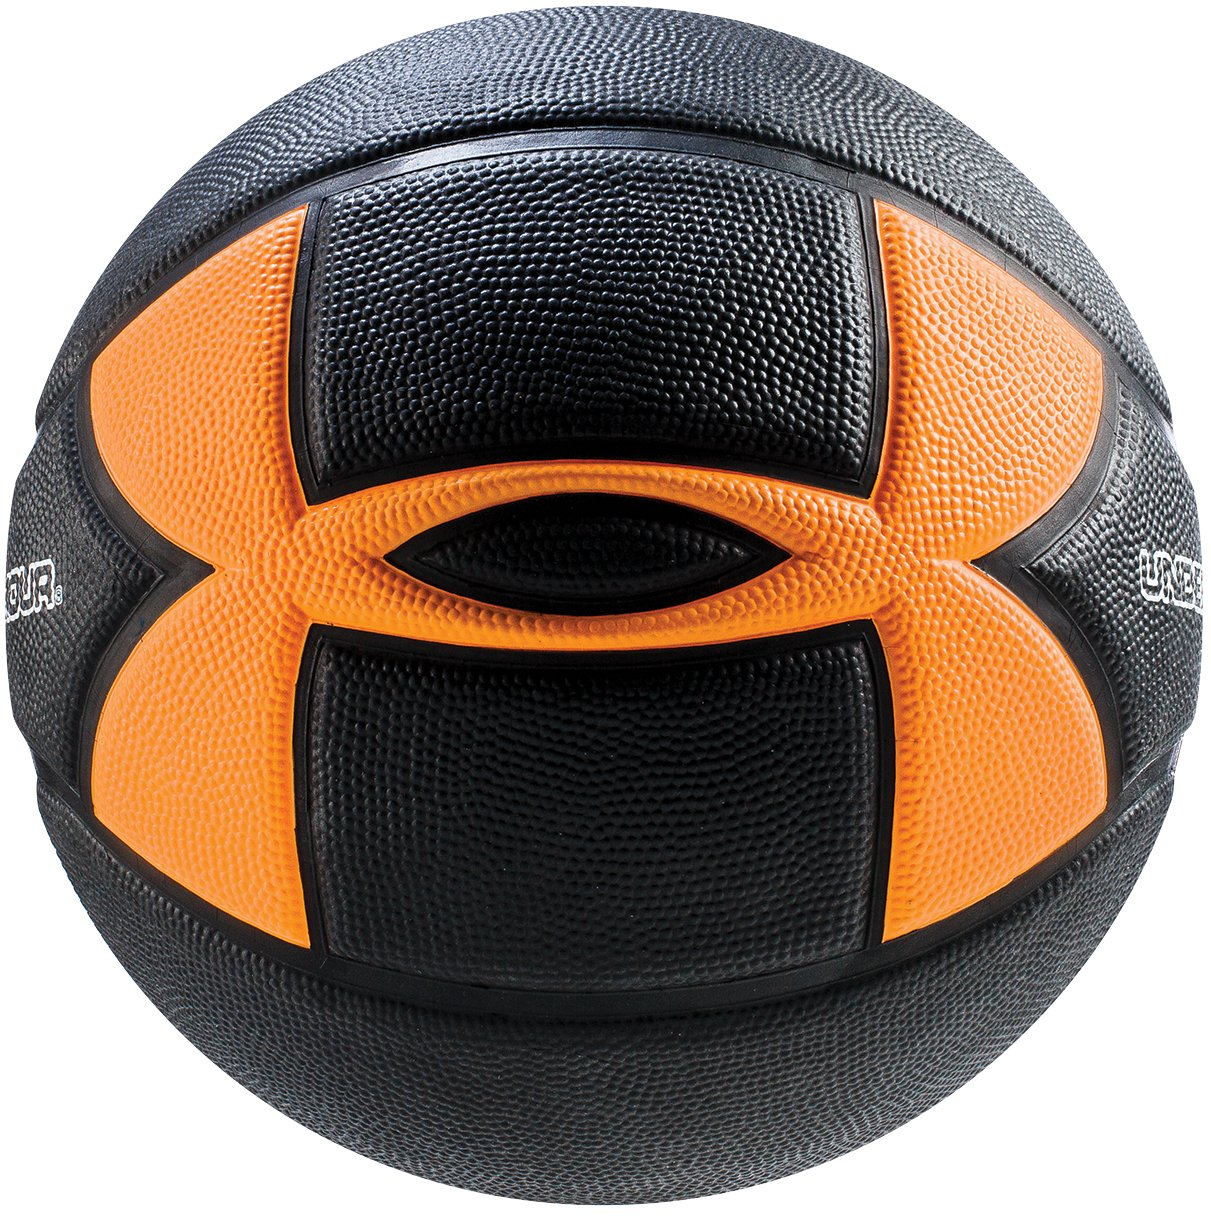 UA 295 Street Basketball, Black